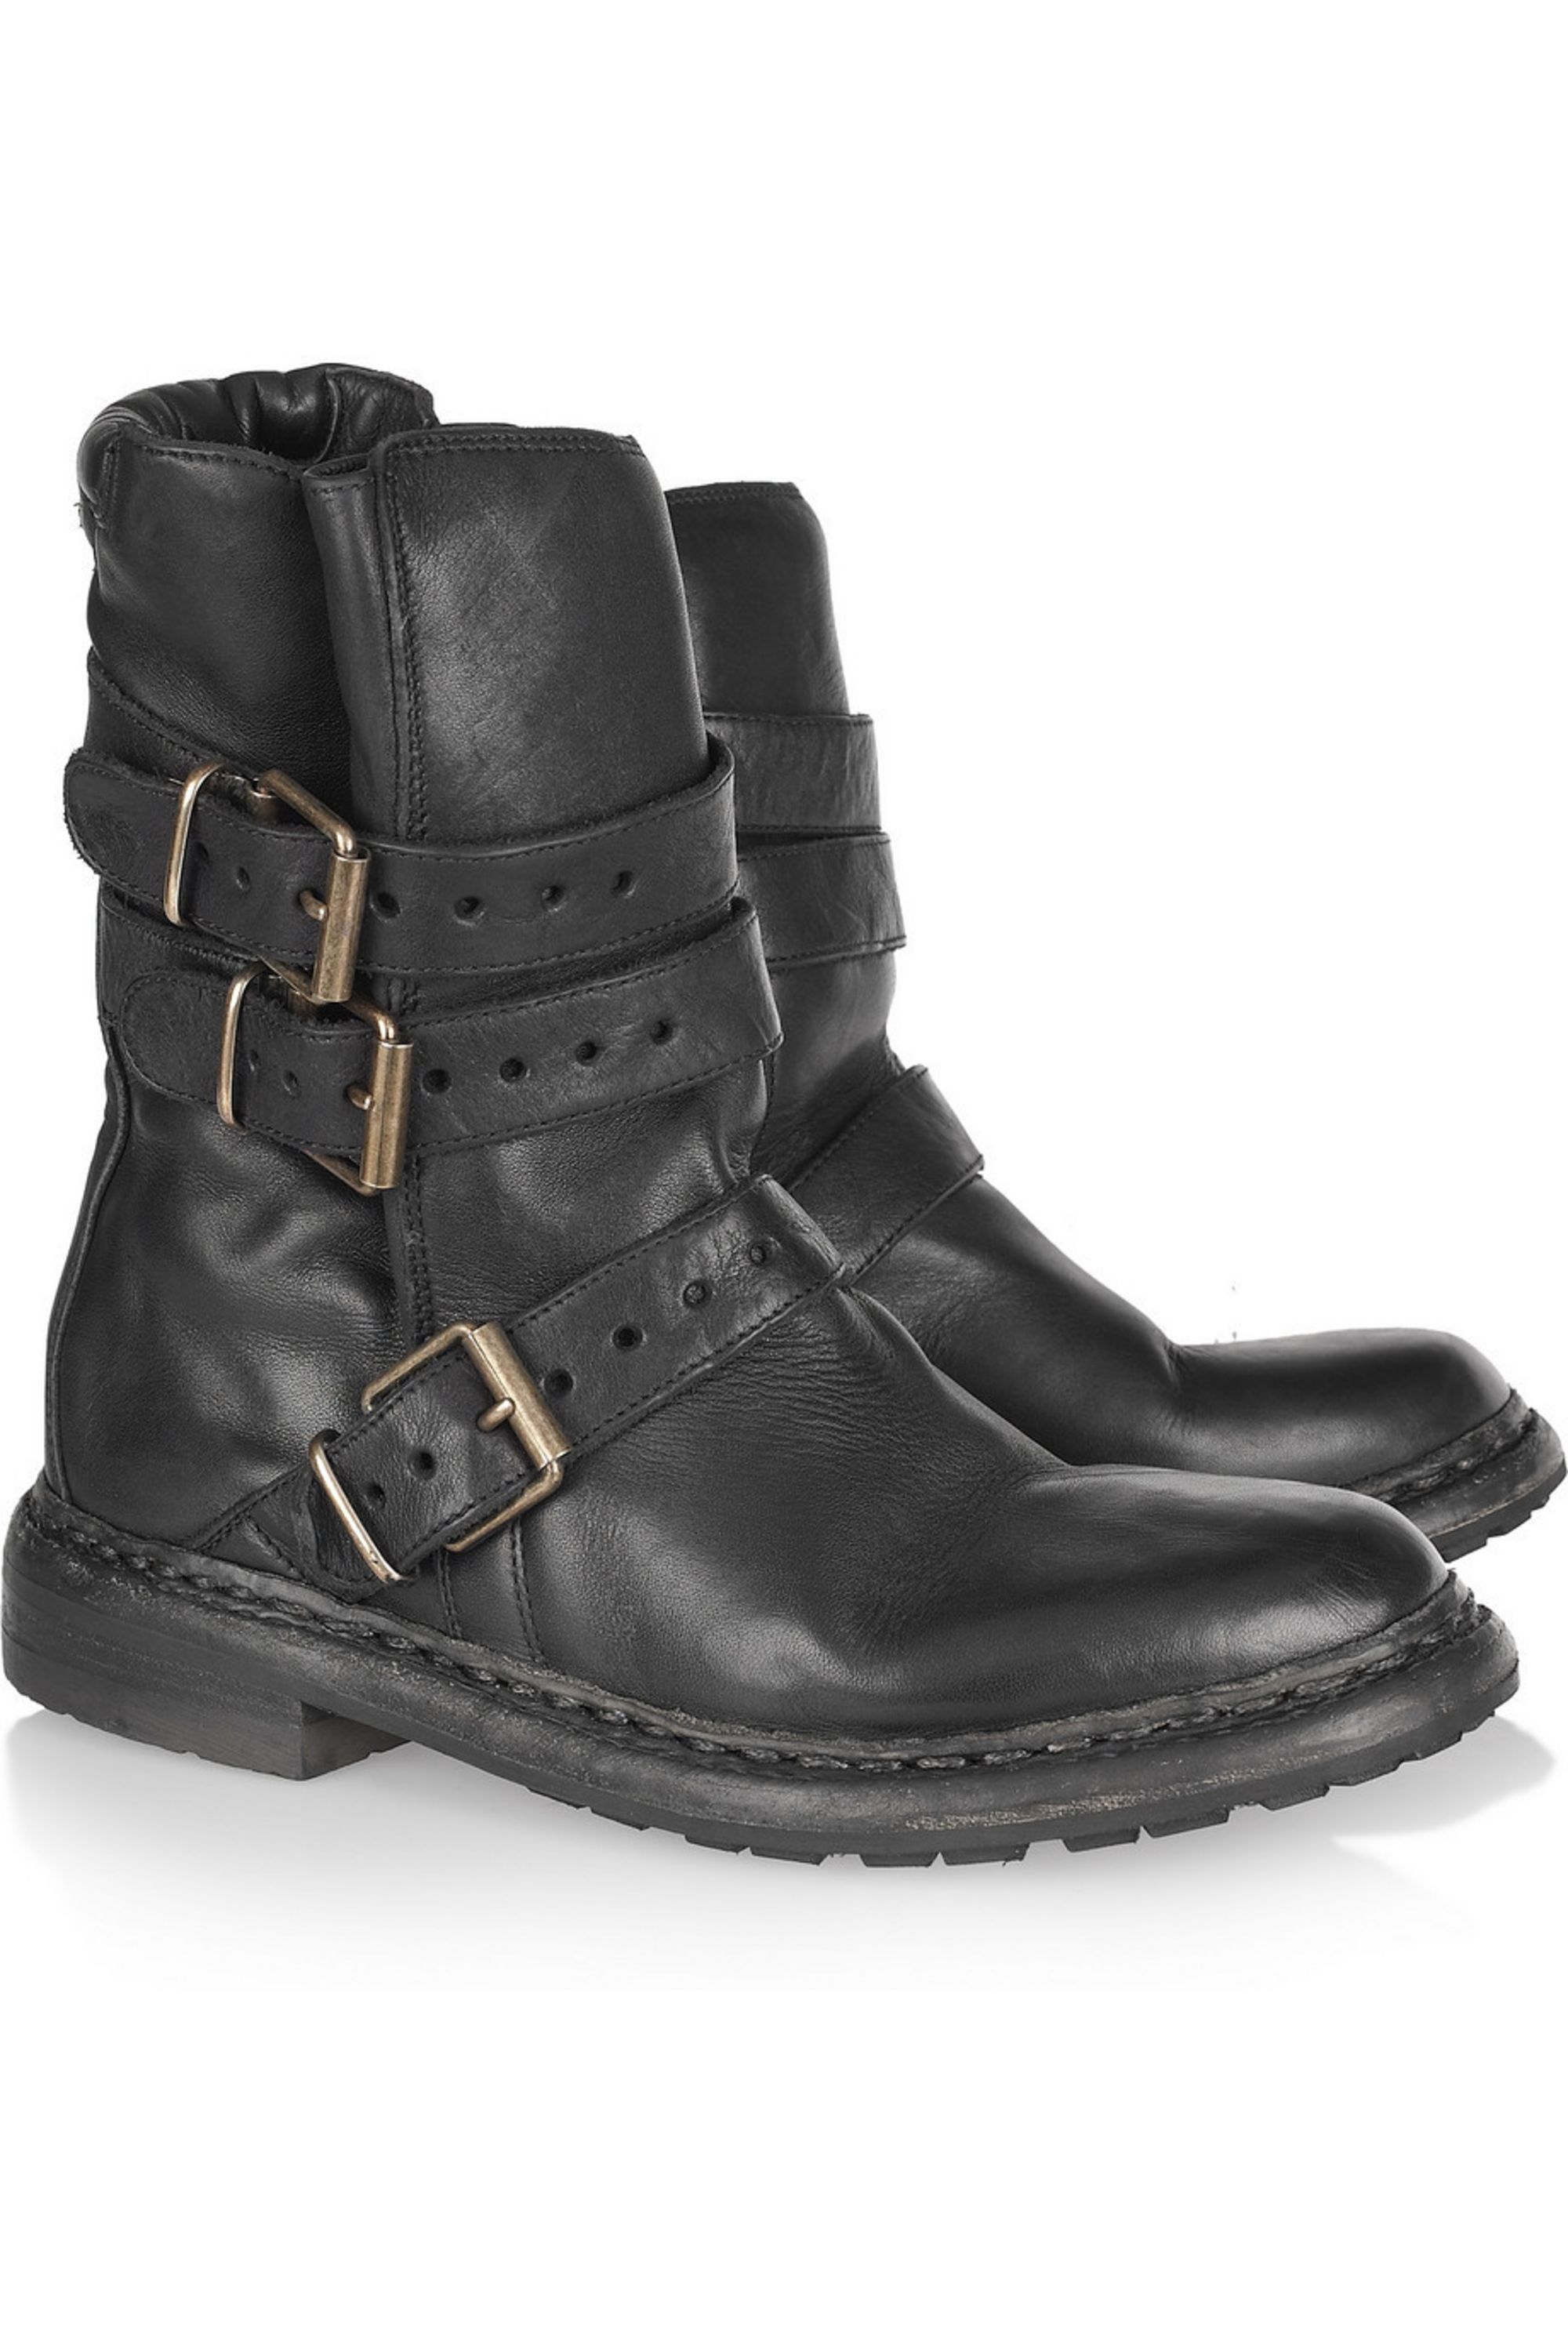 Burberry Leather biker boots